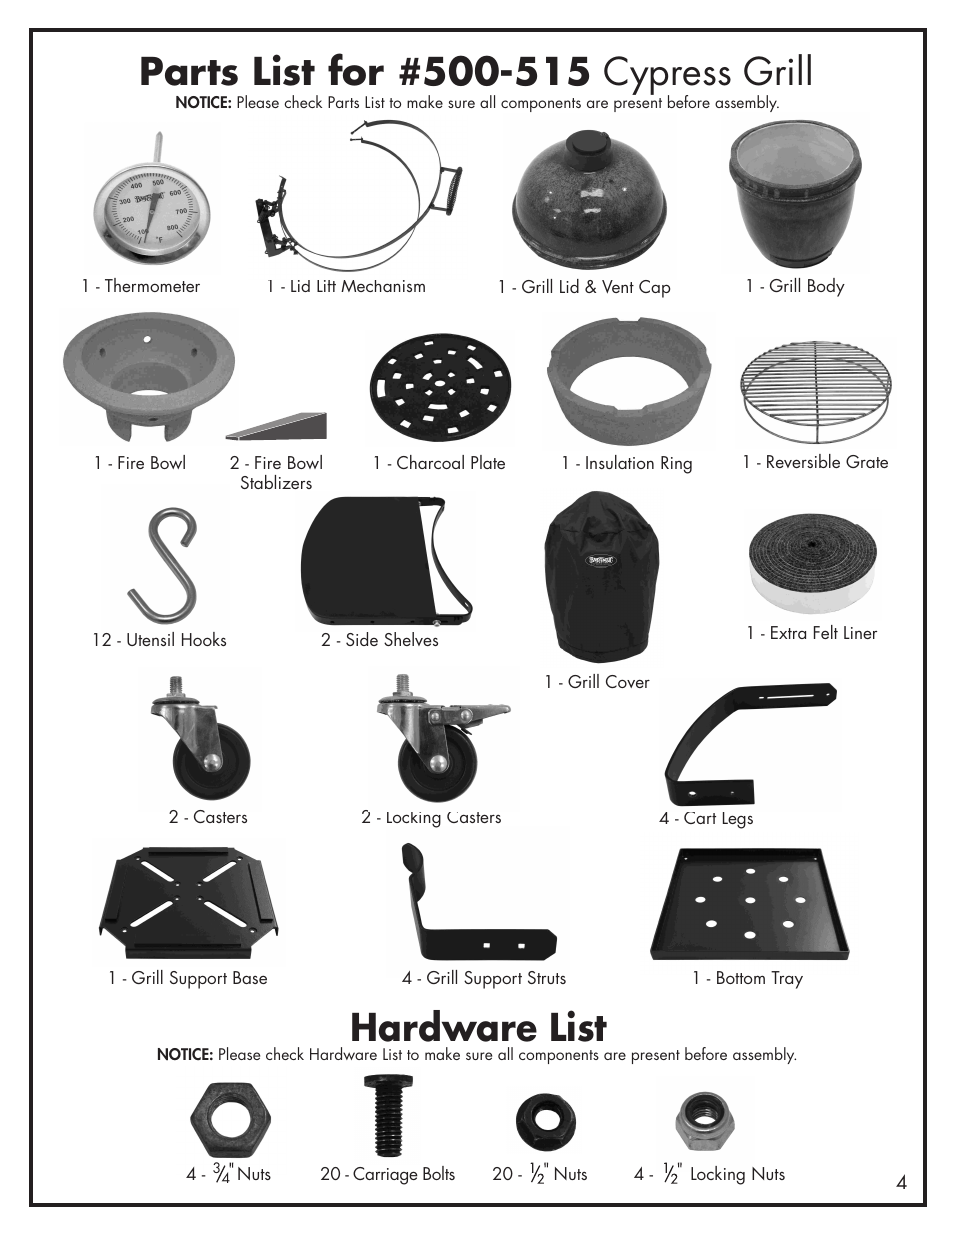 Hardware List Bayou Classic Cypress Grill Ceramic Charcoal Grill